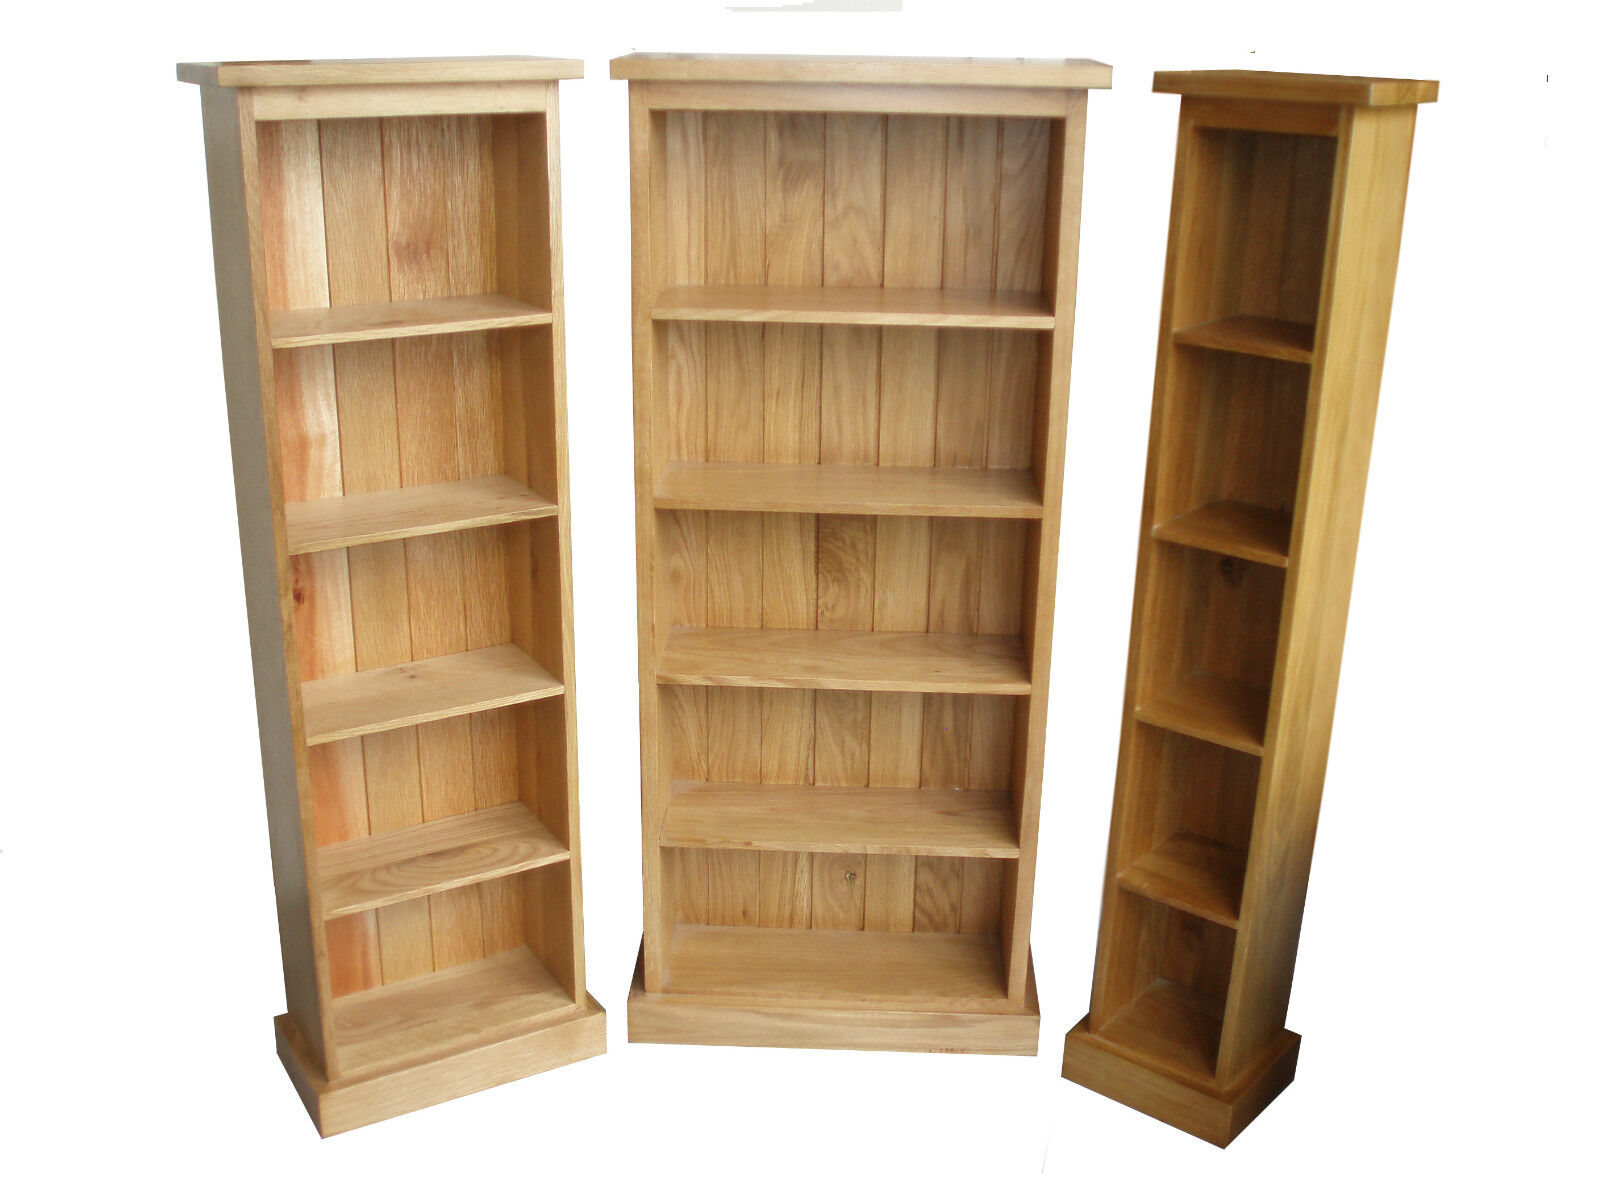 Dvd / Cd Storage Tower Triple, Double, Single, 100% Solid Oak Free Delivery